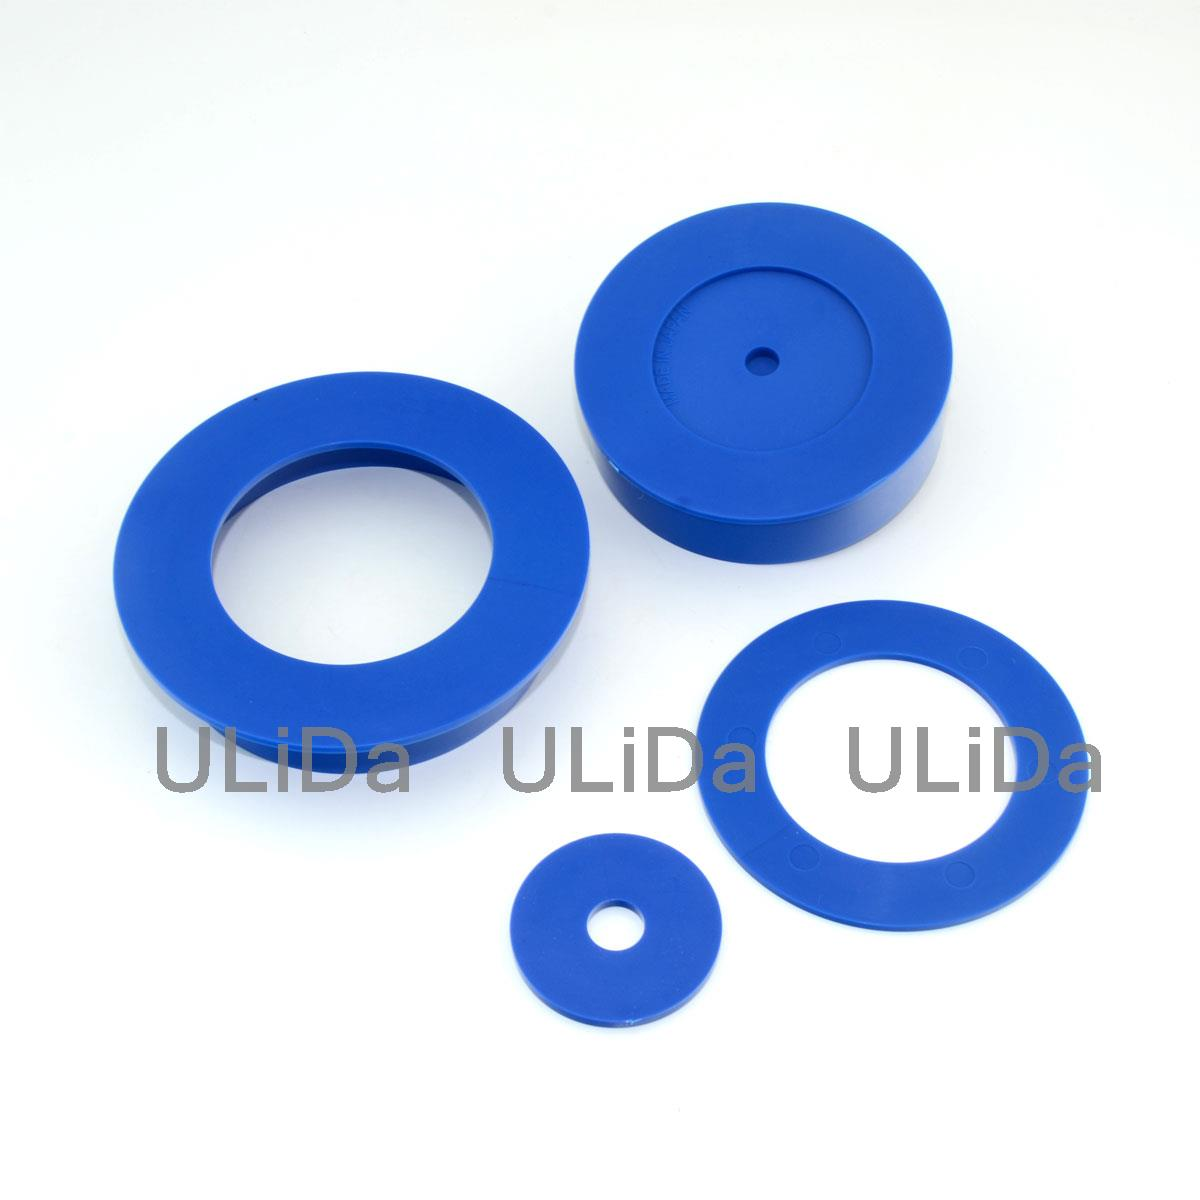 1/10 On-Road Drift Car RC Tire Cementing helper Wheel Hub Wheel Rim Tire tool For HSP Tamiya HPI Kyosho Sakura 110 image